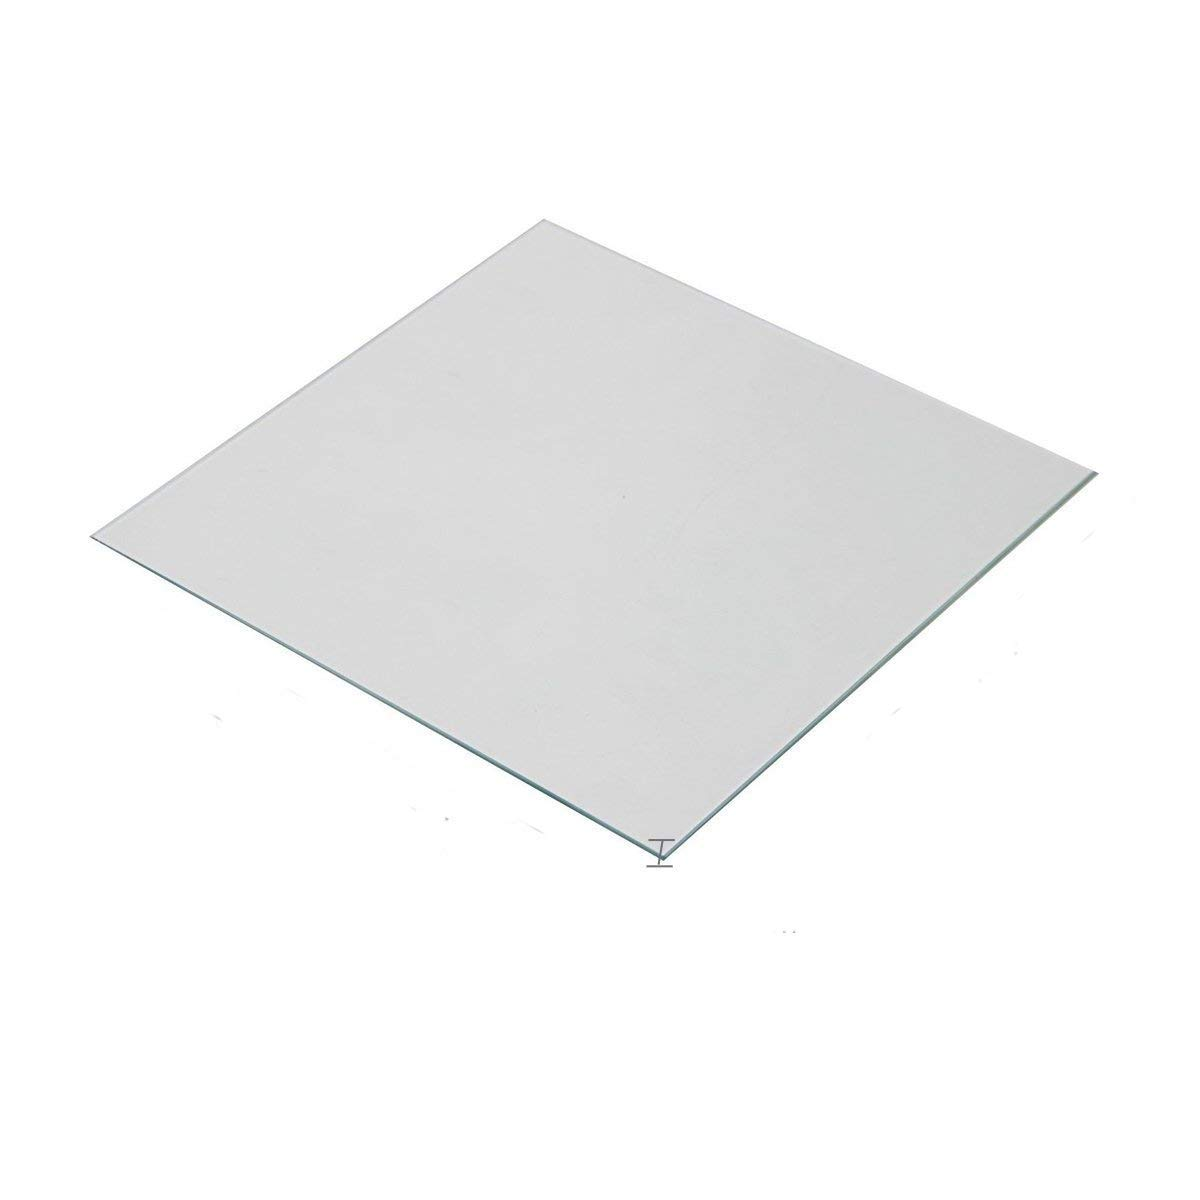 Wisamic Clear Borosilicate Glass Heat Bed 200x200x3mm for 3D Printers Prusa, Monoprice Maker Select V2, Monoprice Maker Select Plus, etc